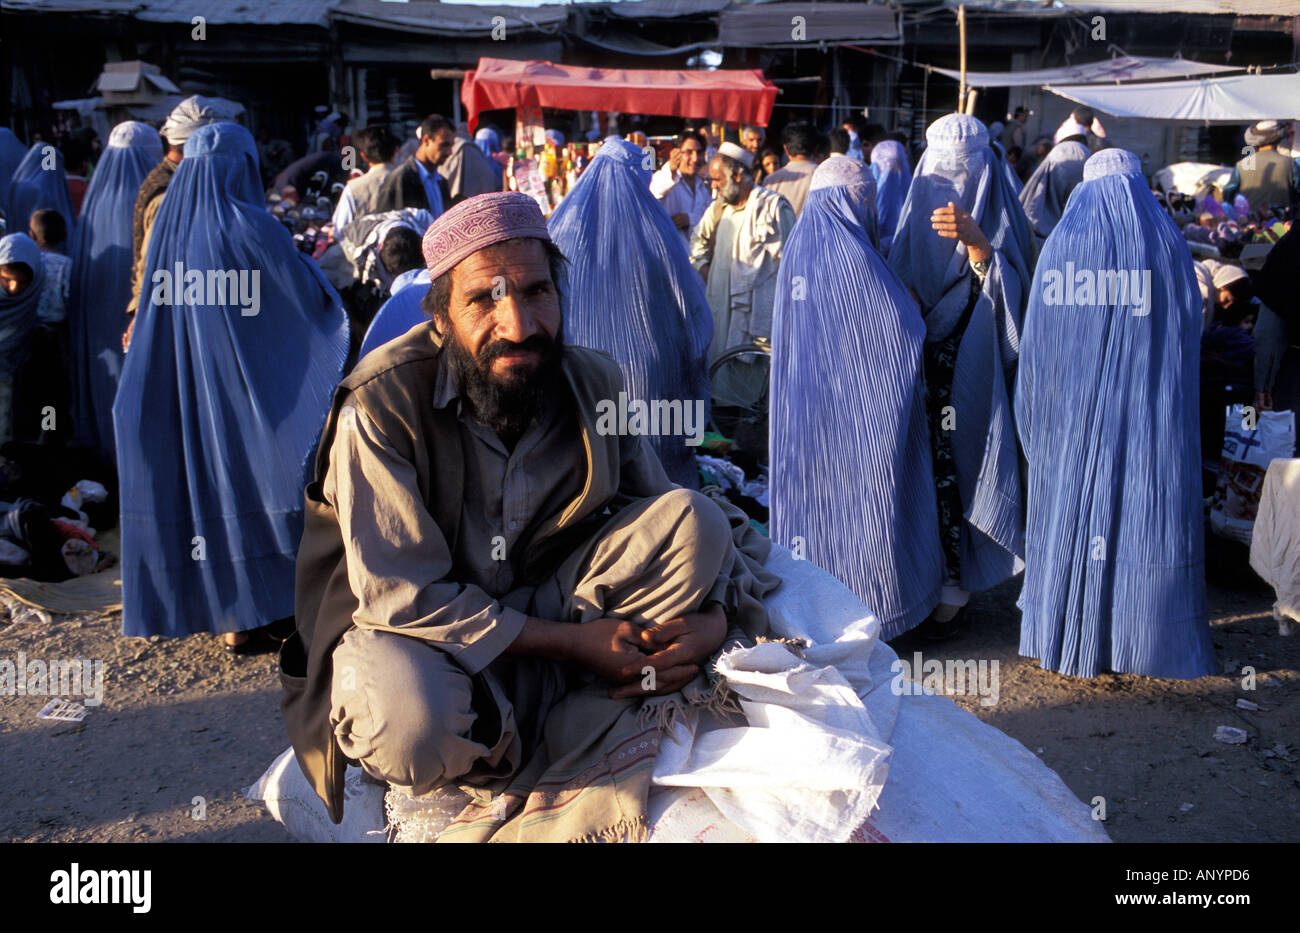 Kabul women in burka shopping - Stock Image